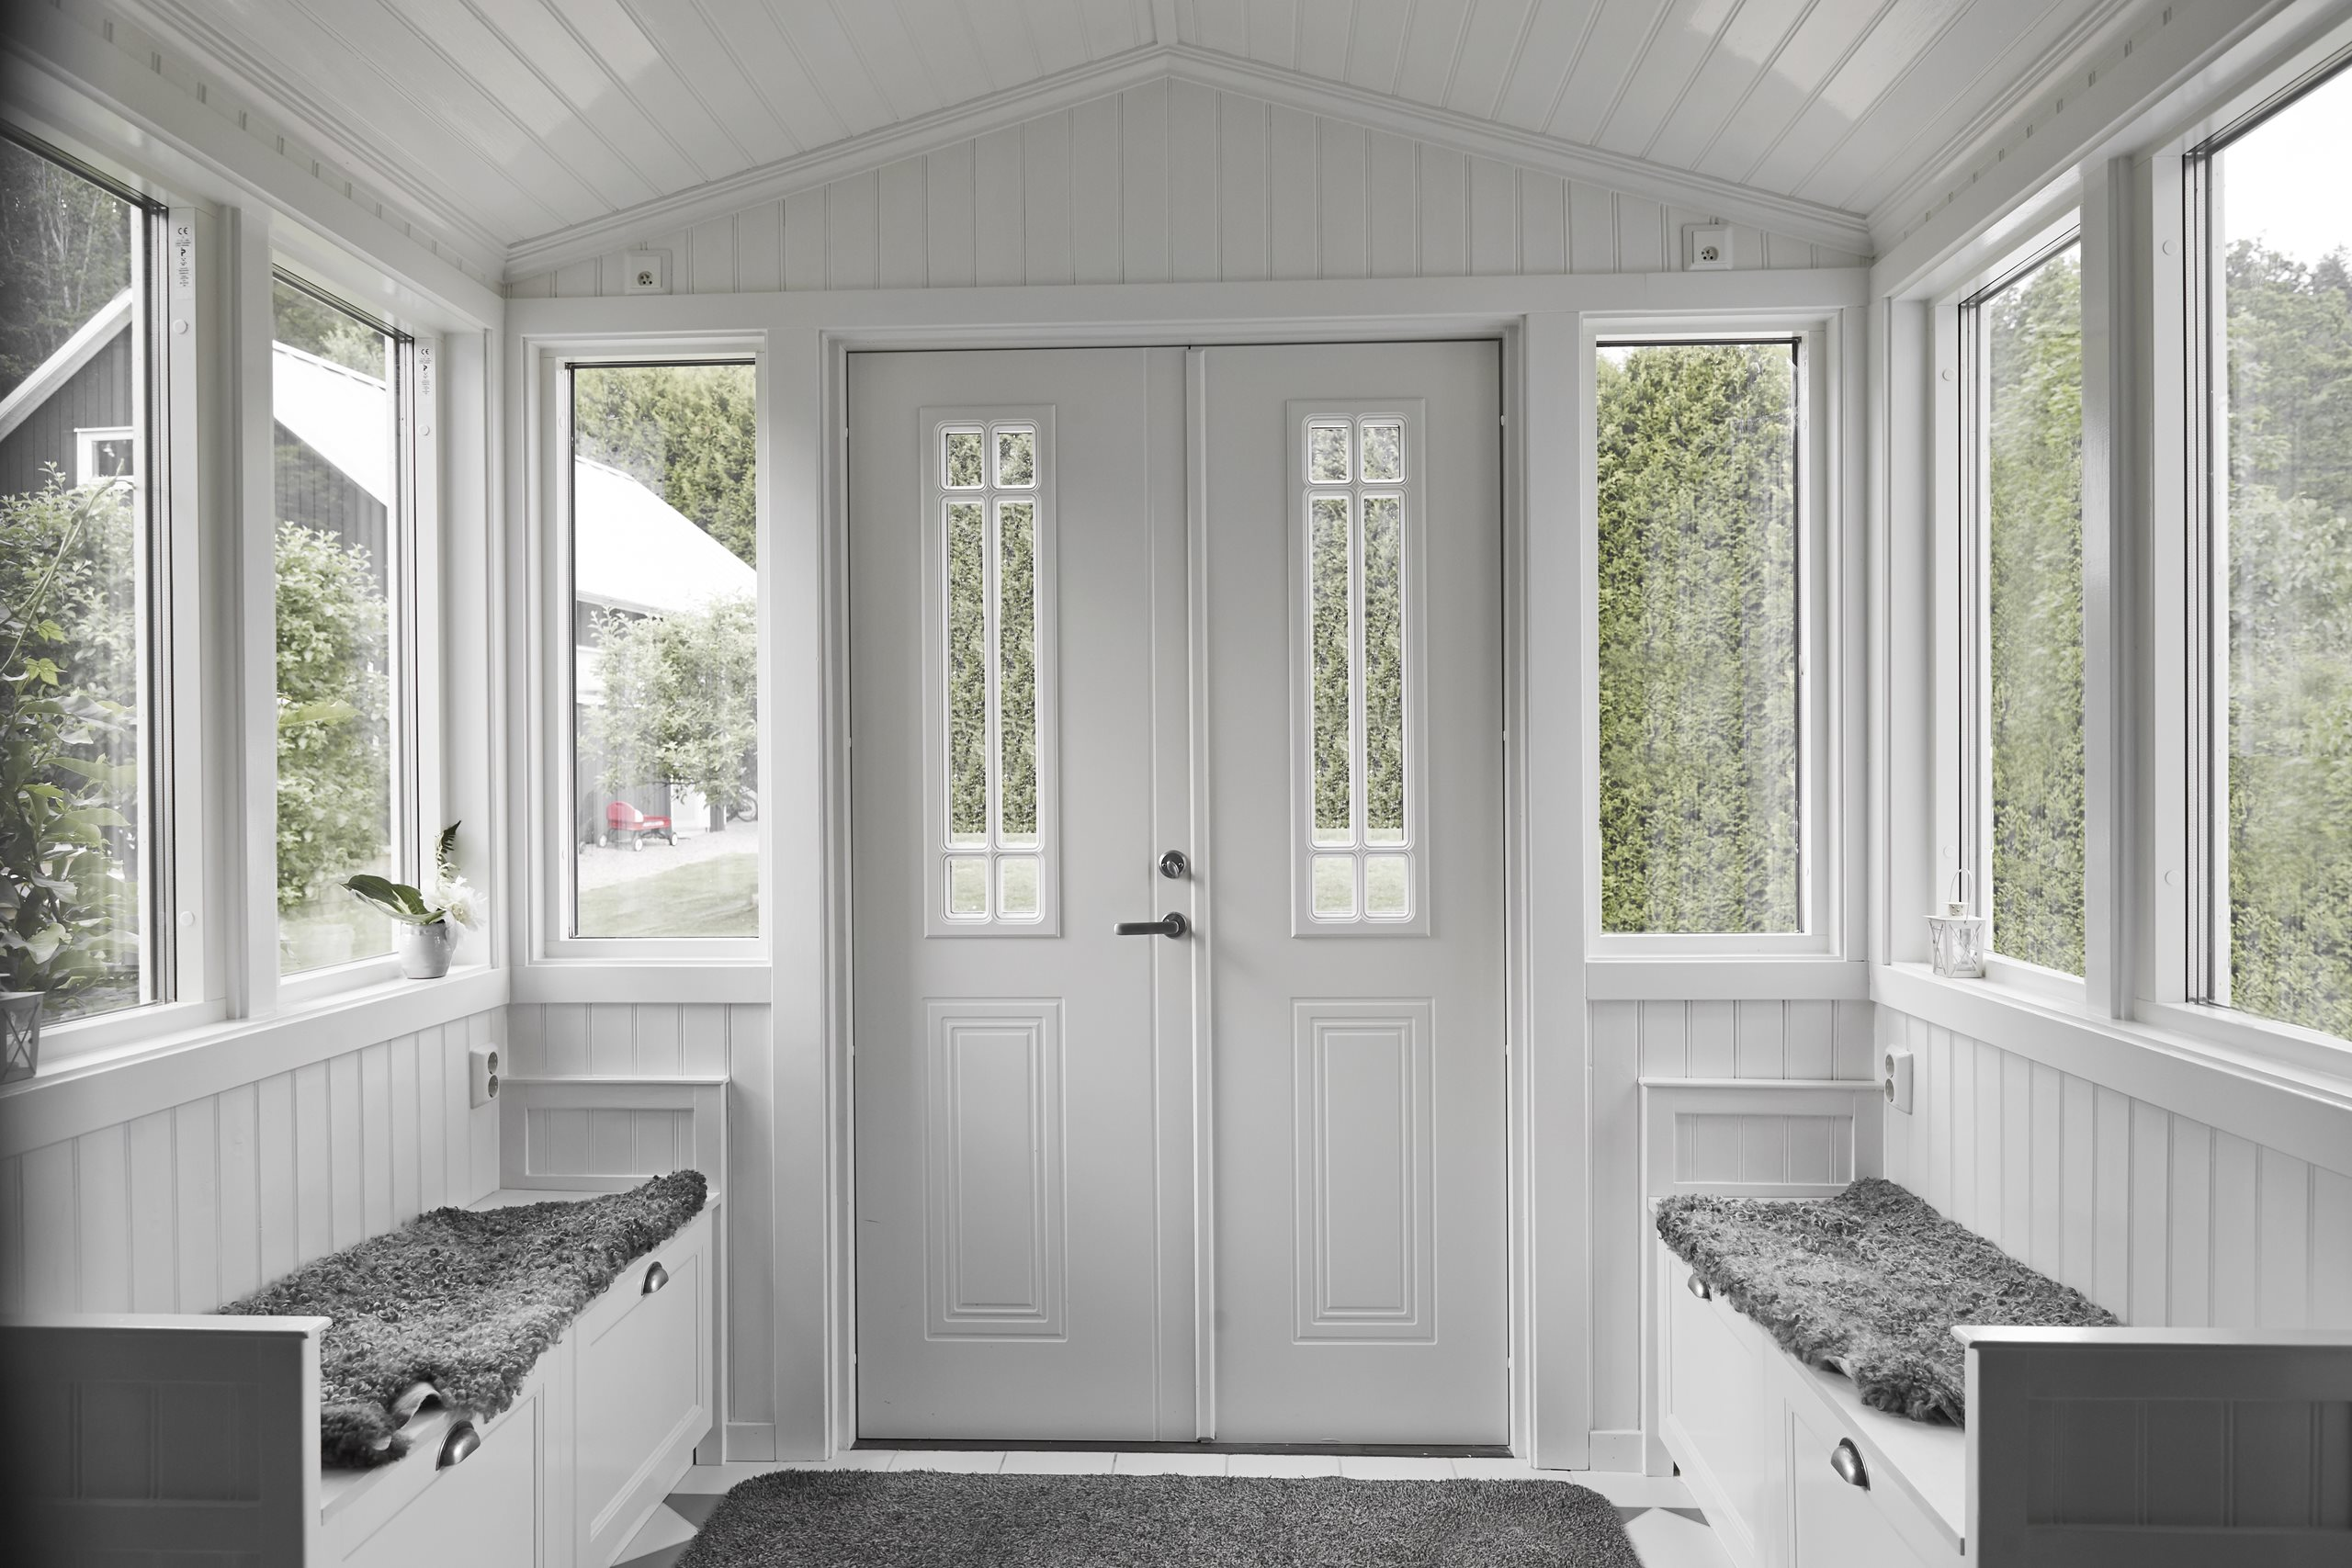 debussy-double-door-white-scenery-11-no-cars